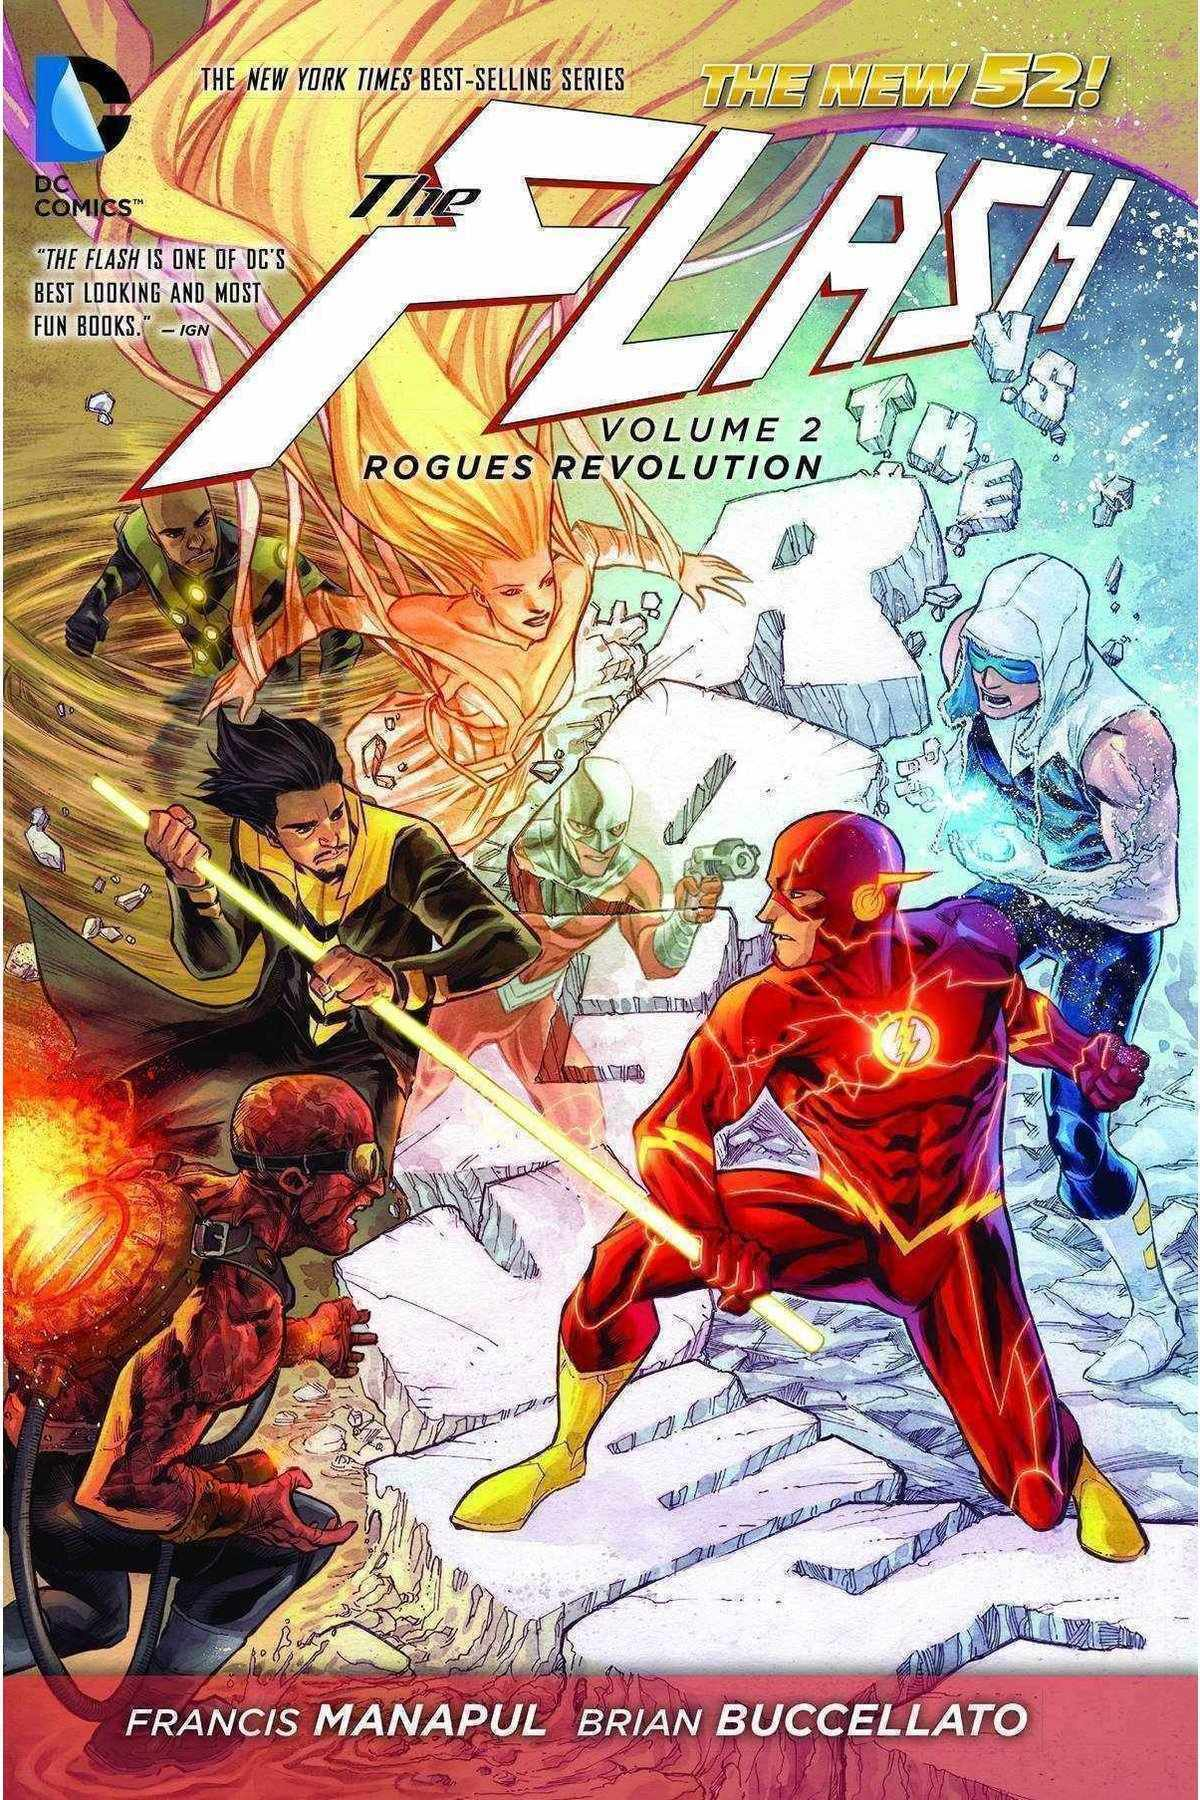 flash-vol-2-rogues-revolution-(n52)-diamond-9781401242732-thegamersden.com